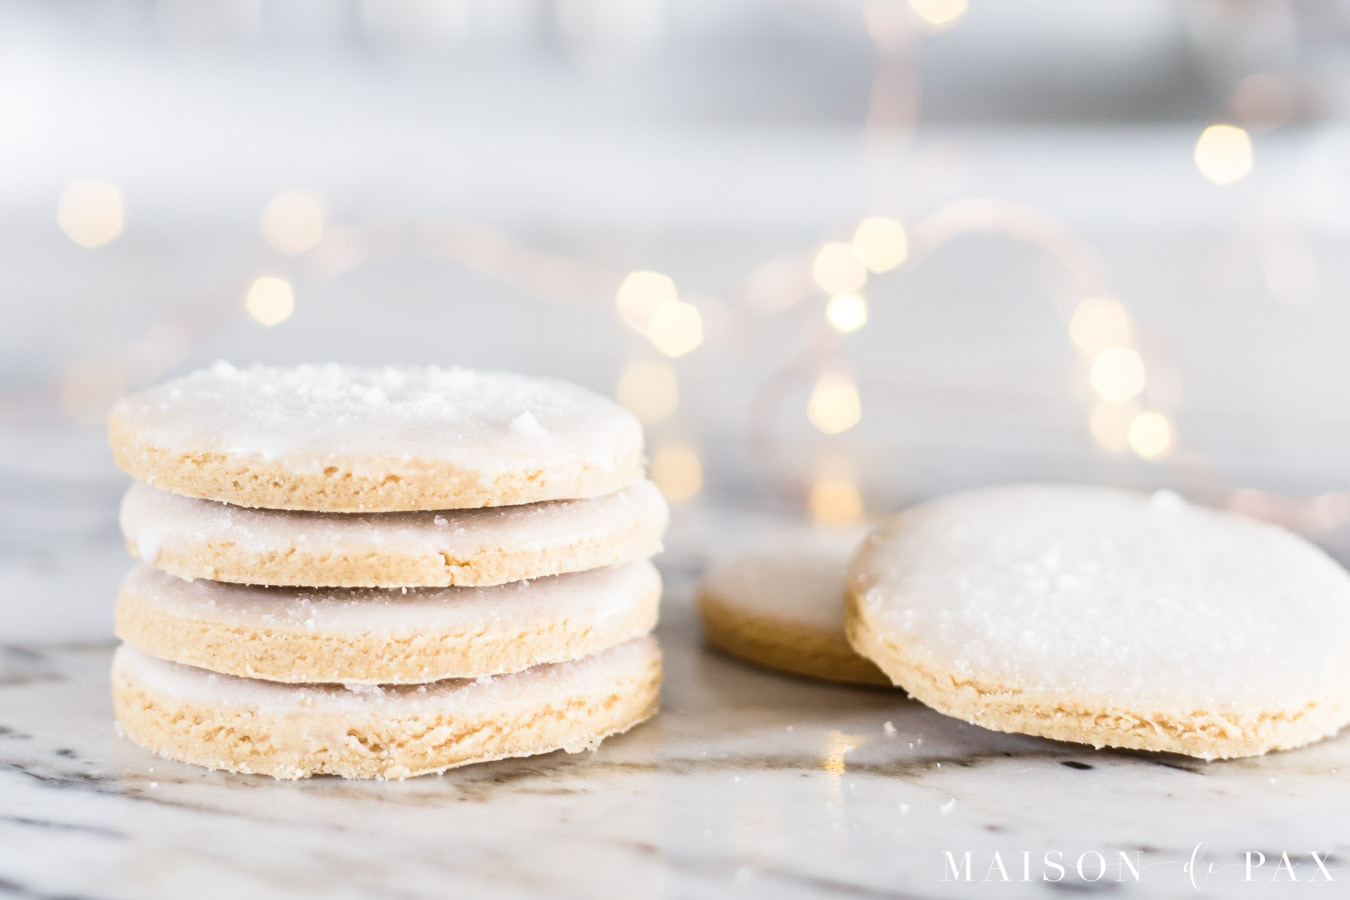 stacked iced cookies with sugar sprinkled on top and christmas lights | maison de pax